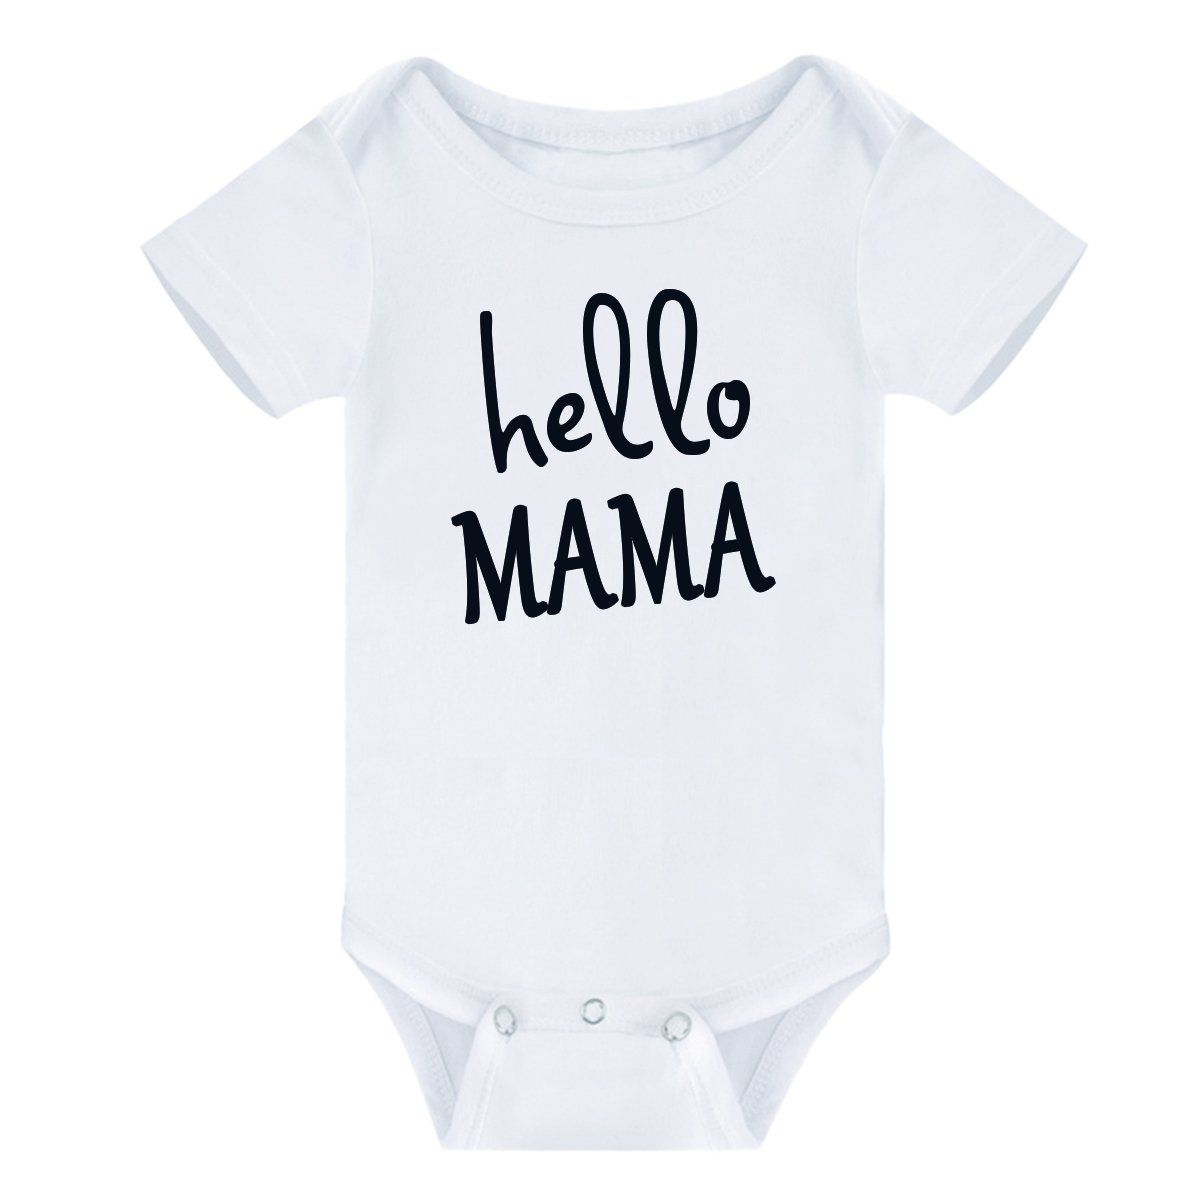 Baby Clothing T-Shirt,Newborn Infant Baby Boys Girls Letter Print Romper Jumpsuit Outfits Clothes T-Shirt